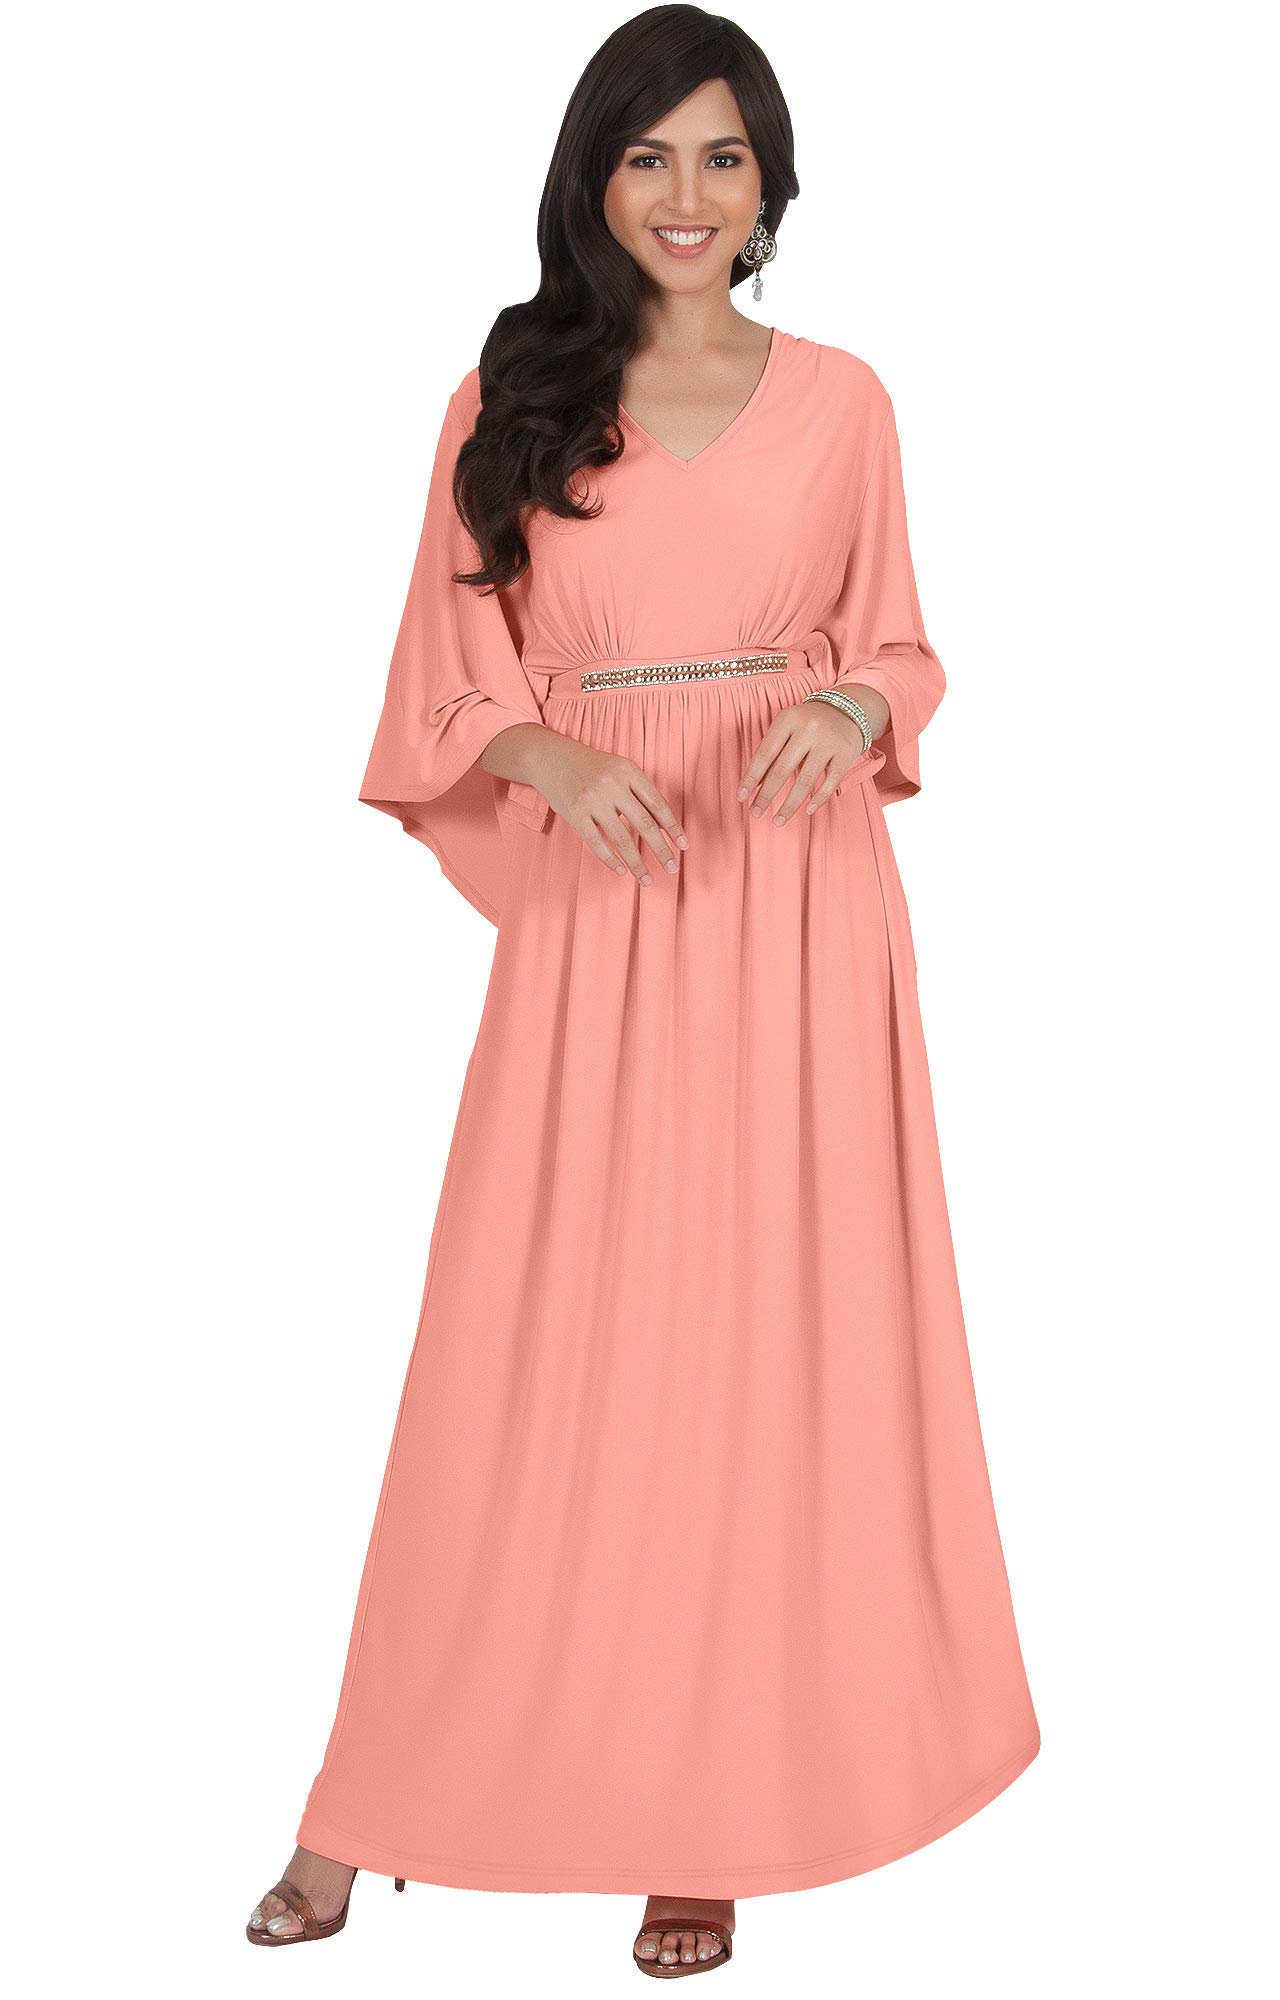 fb6730ce414 KOH KOH Womens Long V-Neck Half Batwing Dolman Sleeve Evening Cocktail  Flowy Empire Waist Bridesmaid Formal Kaftan Wedding Guest Gown Gowns Maxi  Dress ...